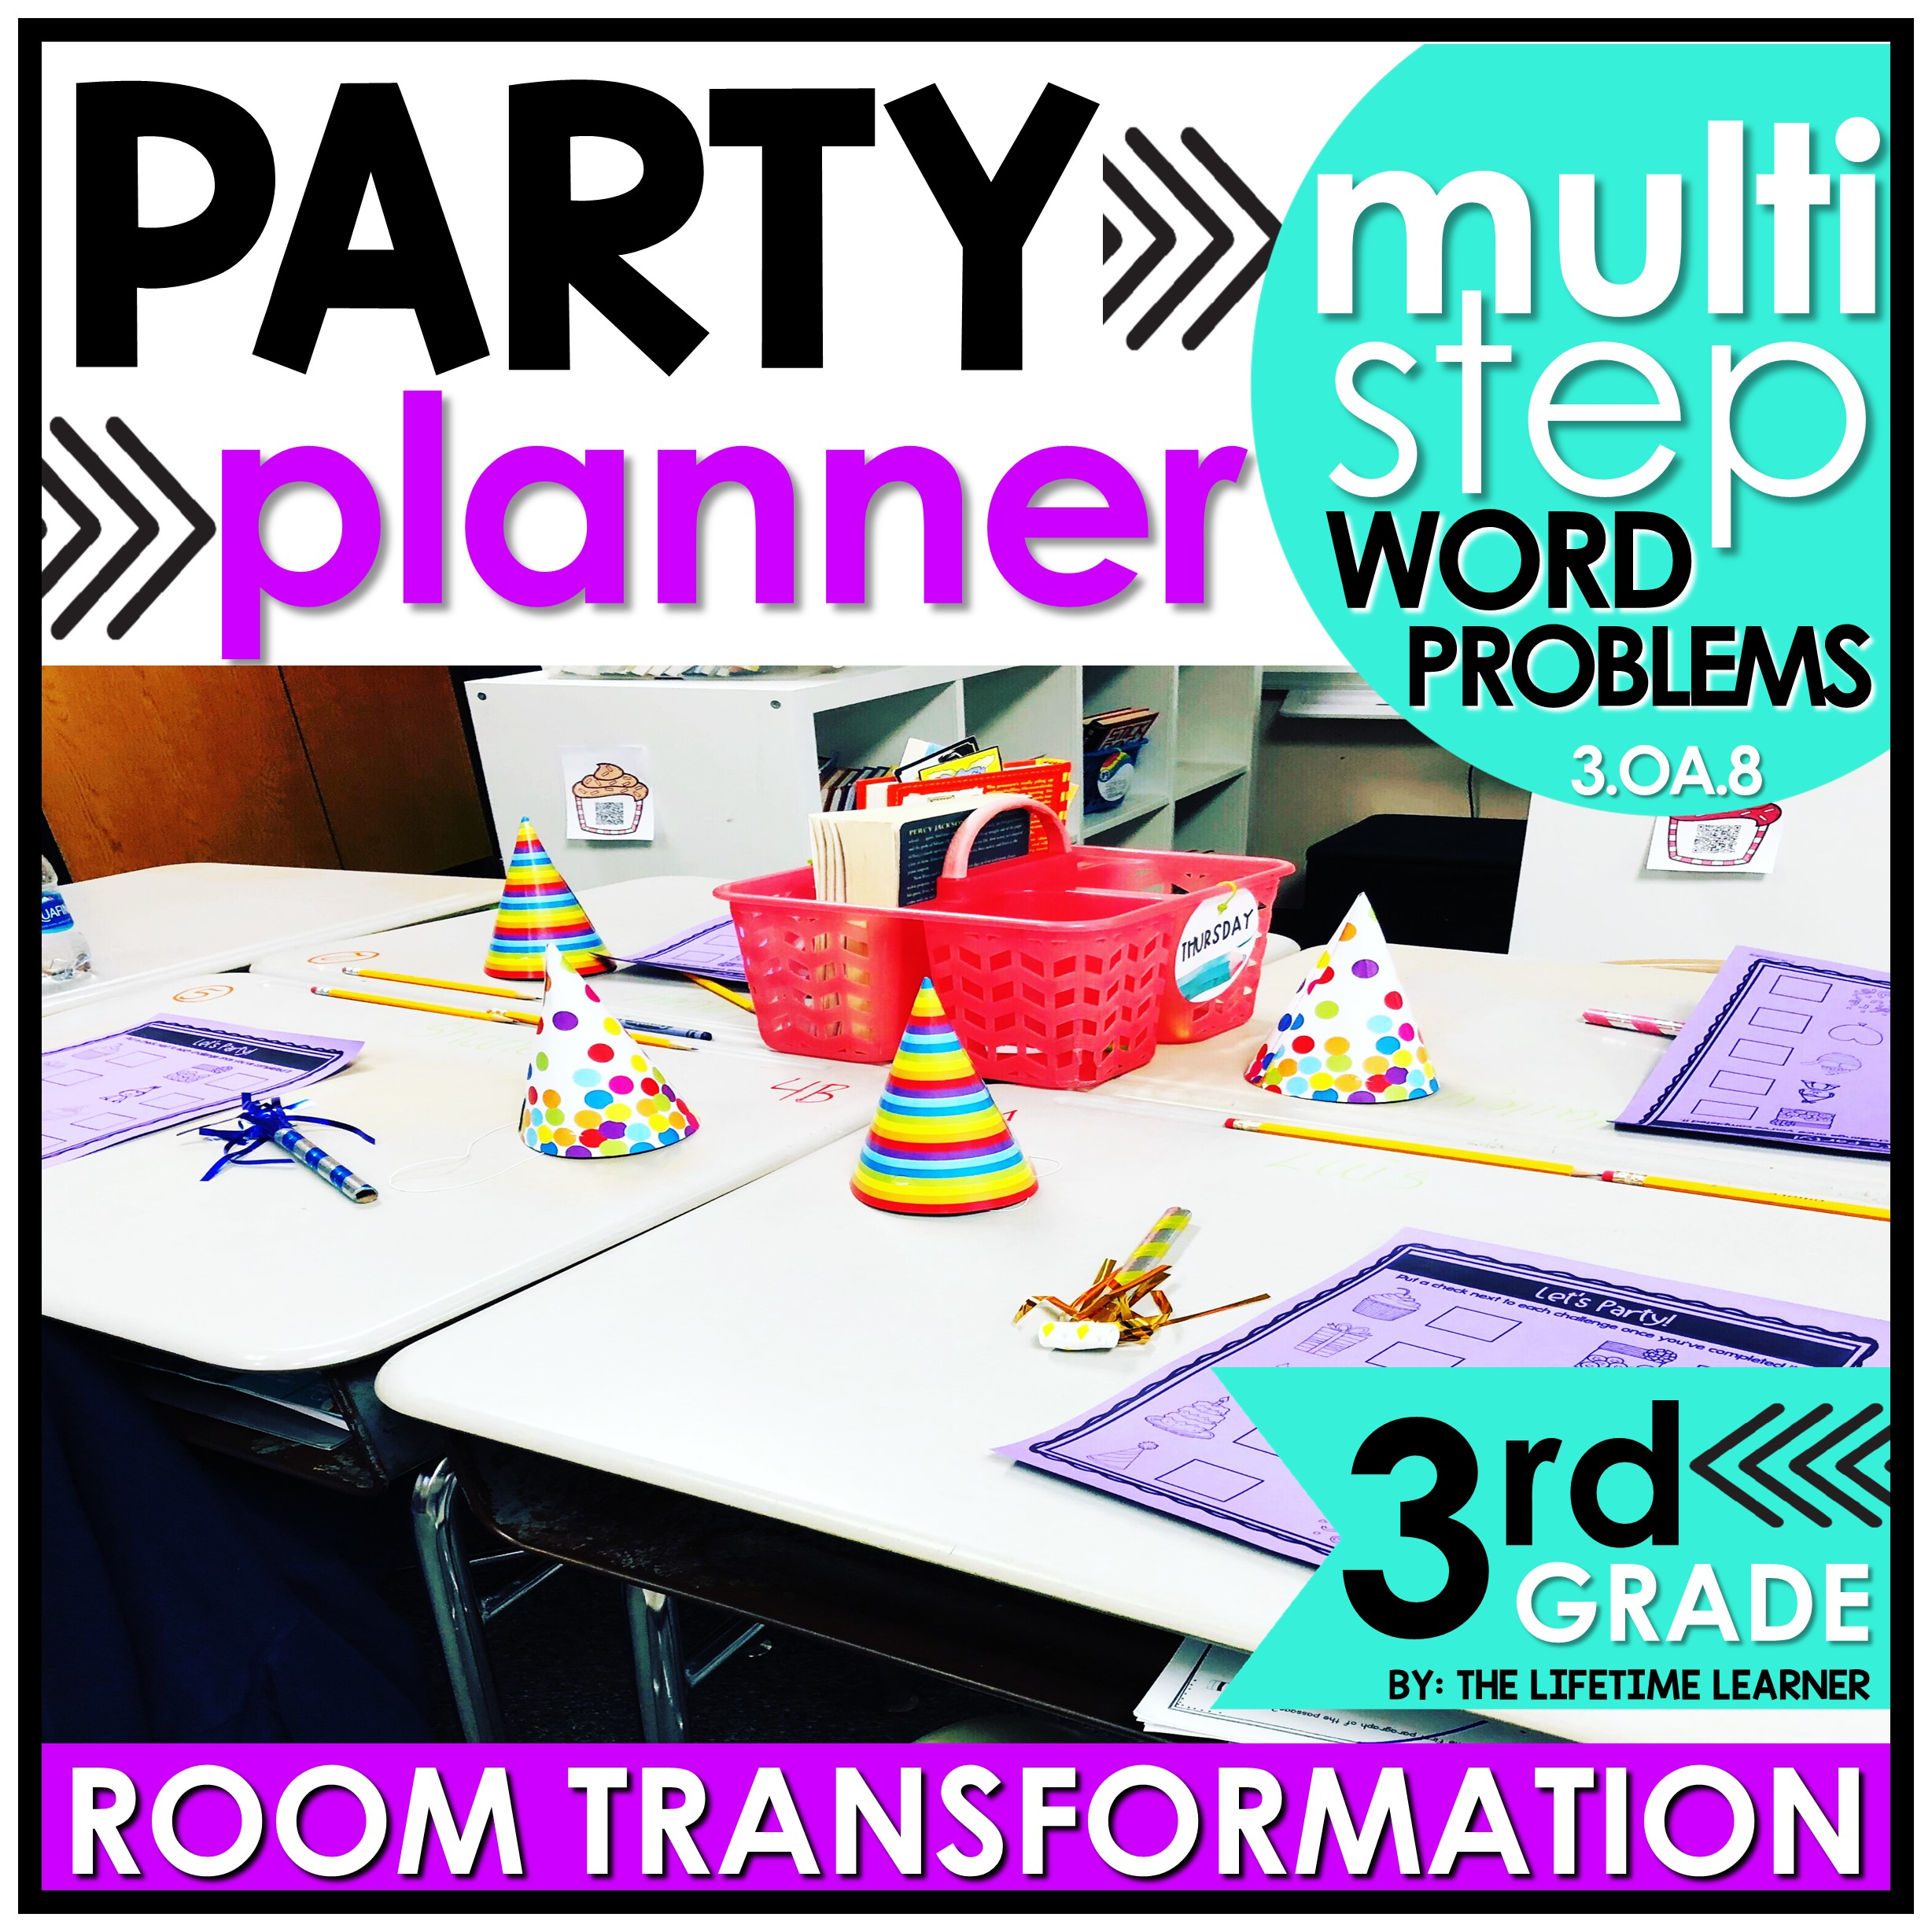 small resolution of 3rd Grade Multi-Step Word Problems   Party Planner Classroom Transformation  - The Lifetime Learner